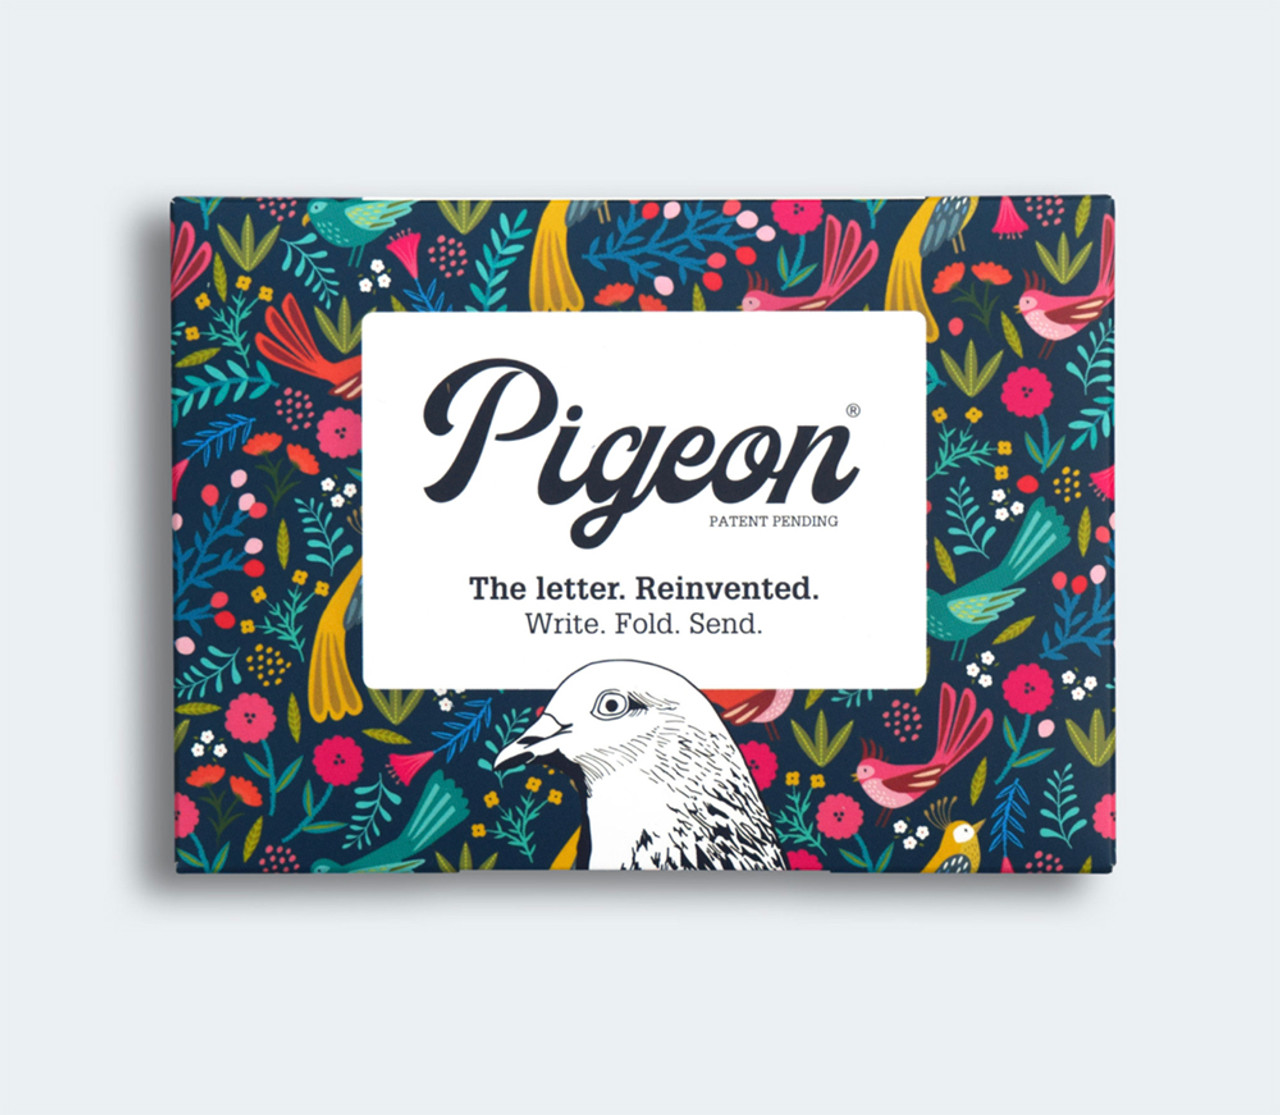 Pigeon Posted - Magical Menagerie pack